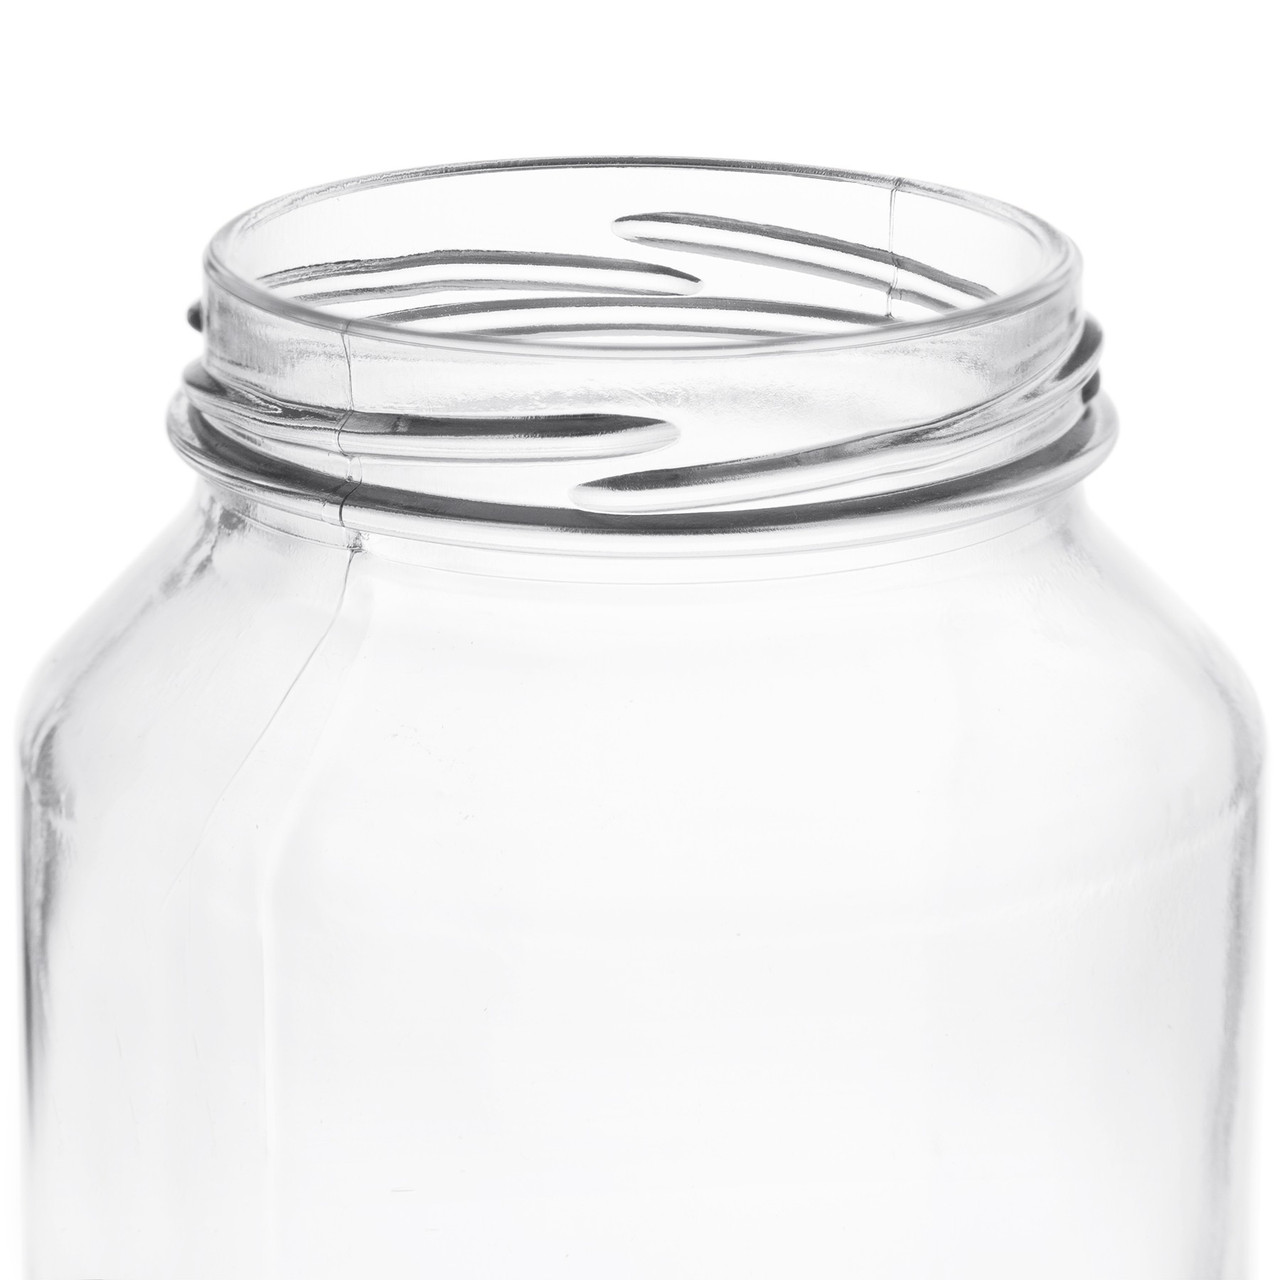 24oz Paragon Glass Jar Case 12/cs